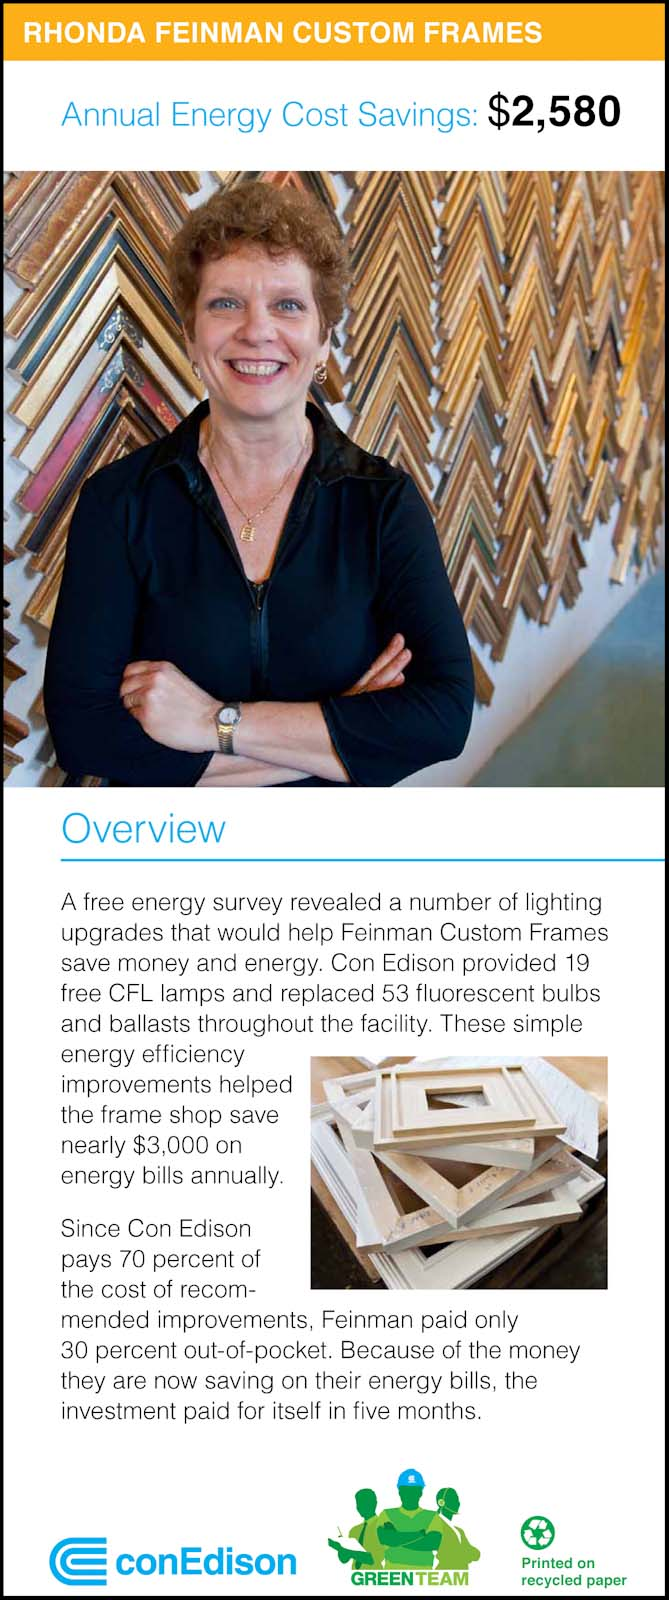 Portraits of small business owners, as part of campaign for Con Edison's Green Team.